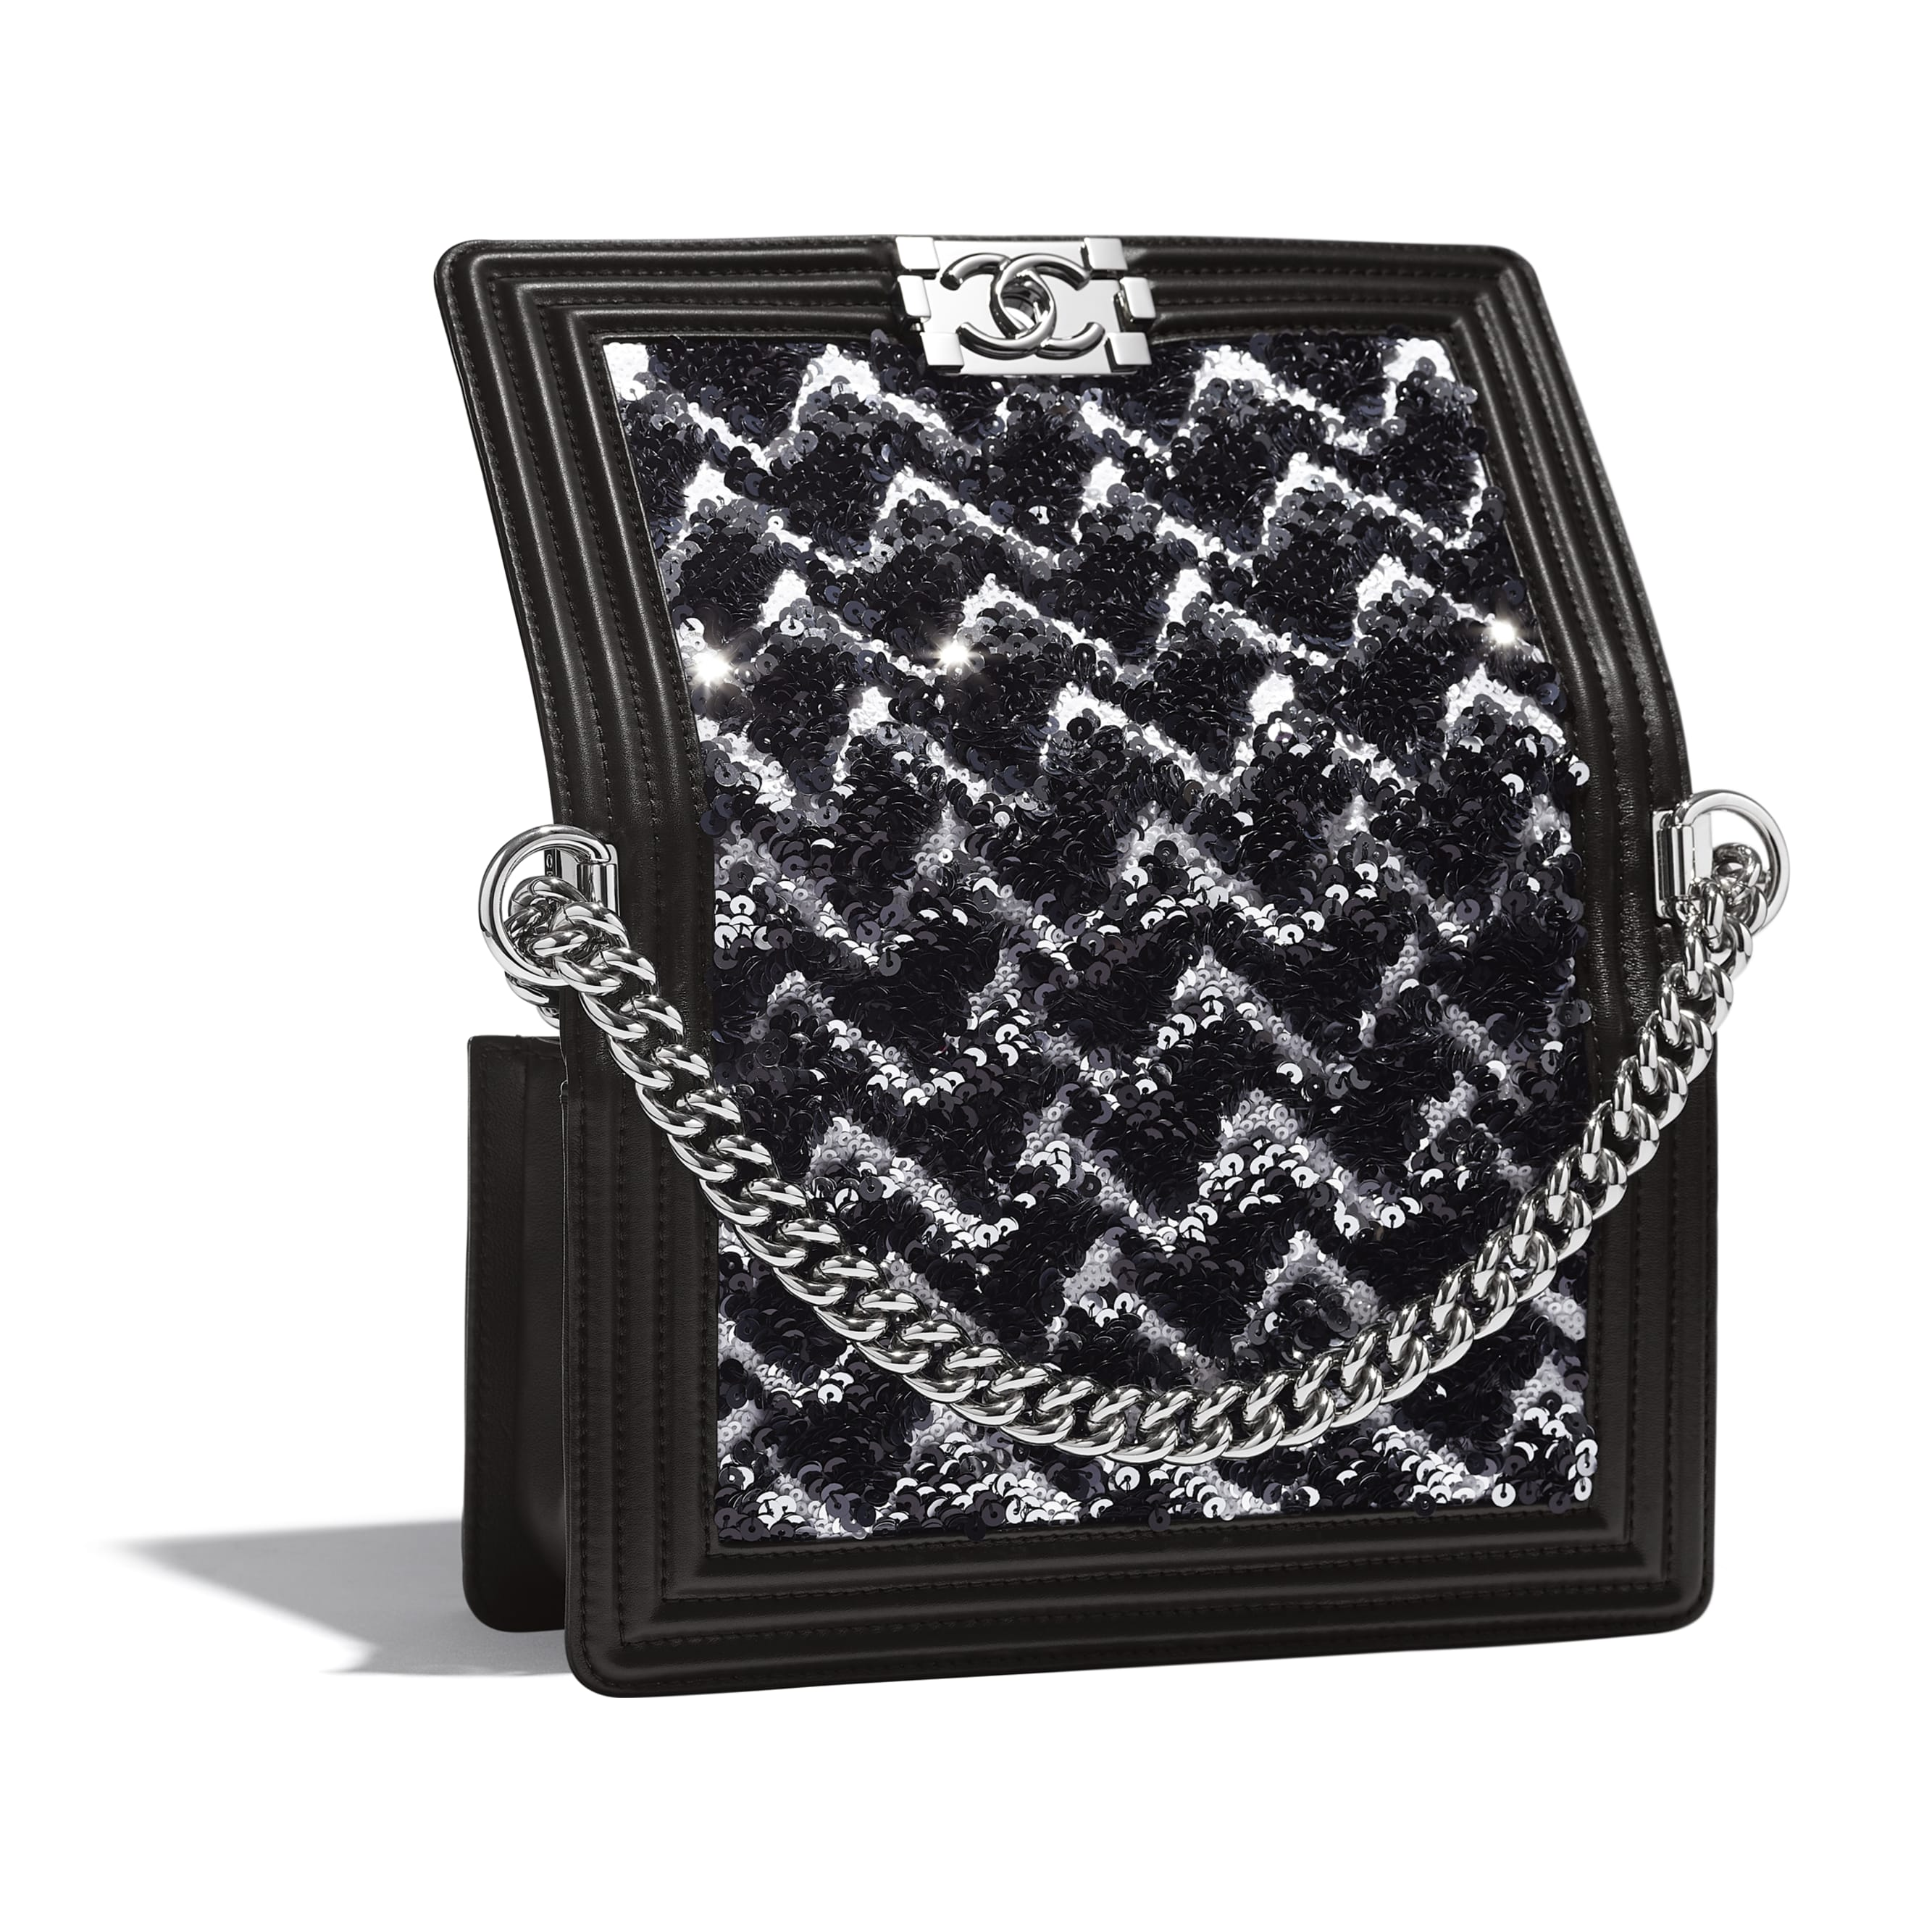 BOY CHANEL Handbag - Black, Silver & White - Sequins, Calfskin & Silver-Tone Metal - Extra view - see standard sized version